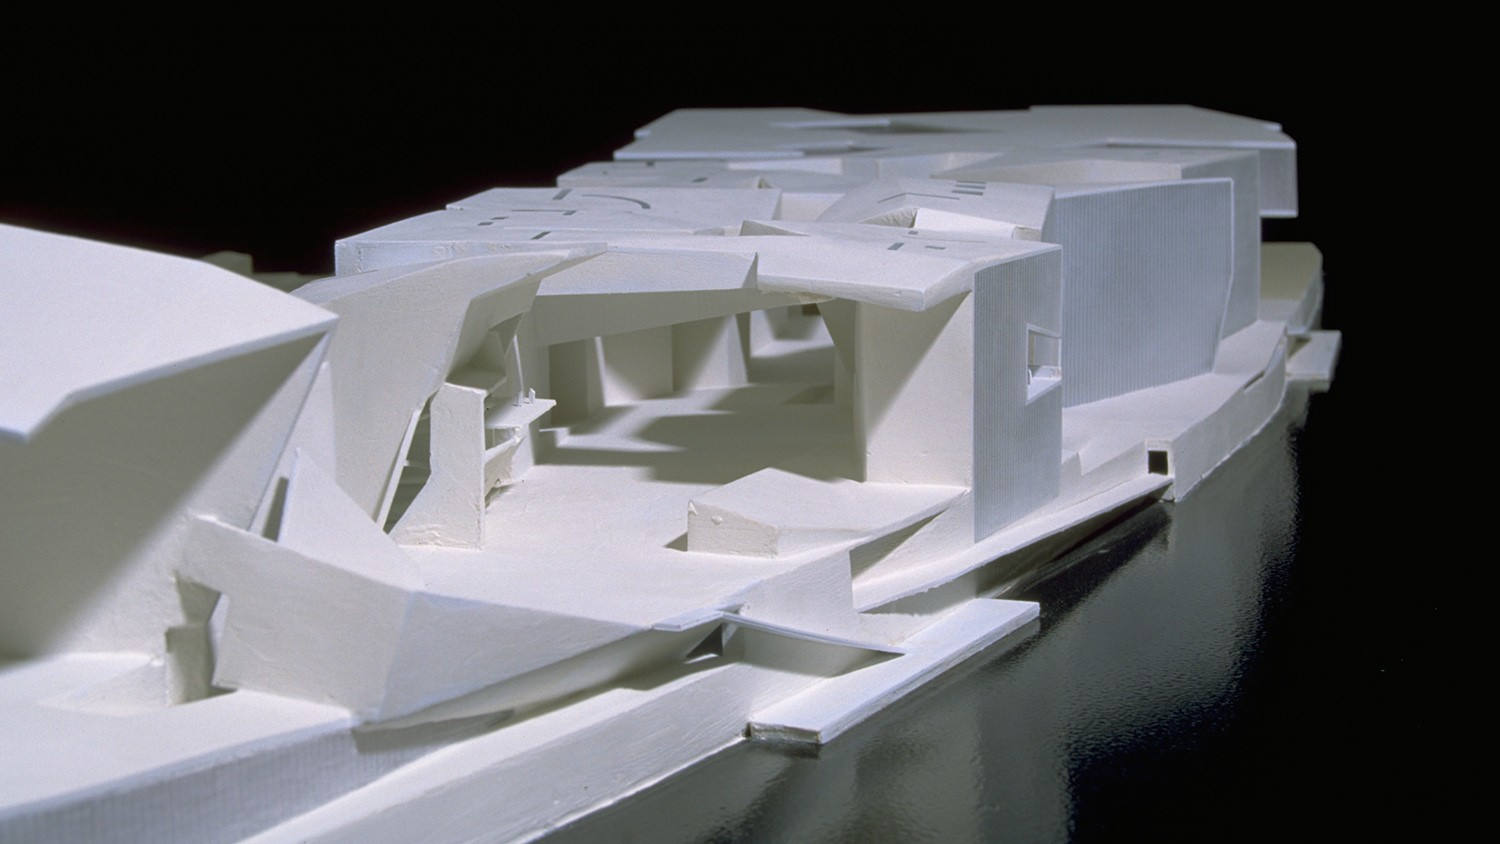 https://stevenholl.sfo2.digitaloceanspaces.com/uploads/projects/project-images/StevenHollArchitects_IleSeguin_front_WH.jpg